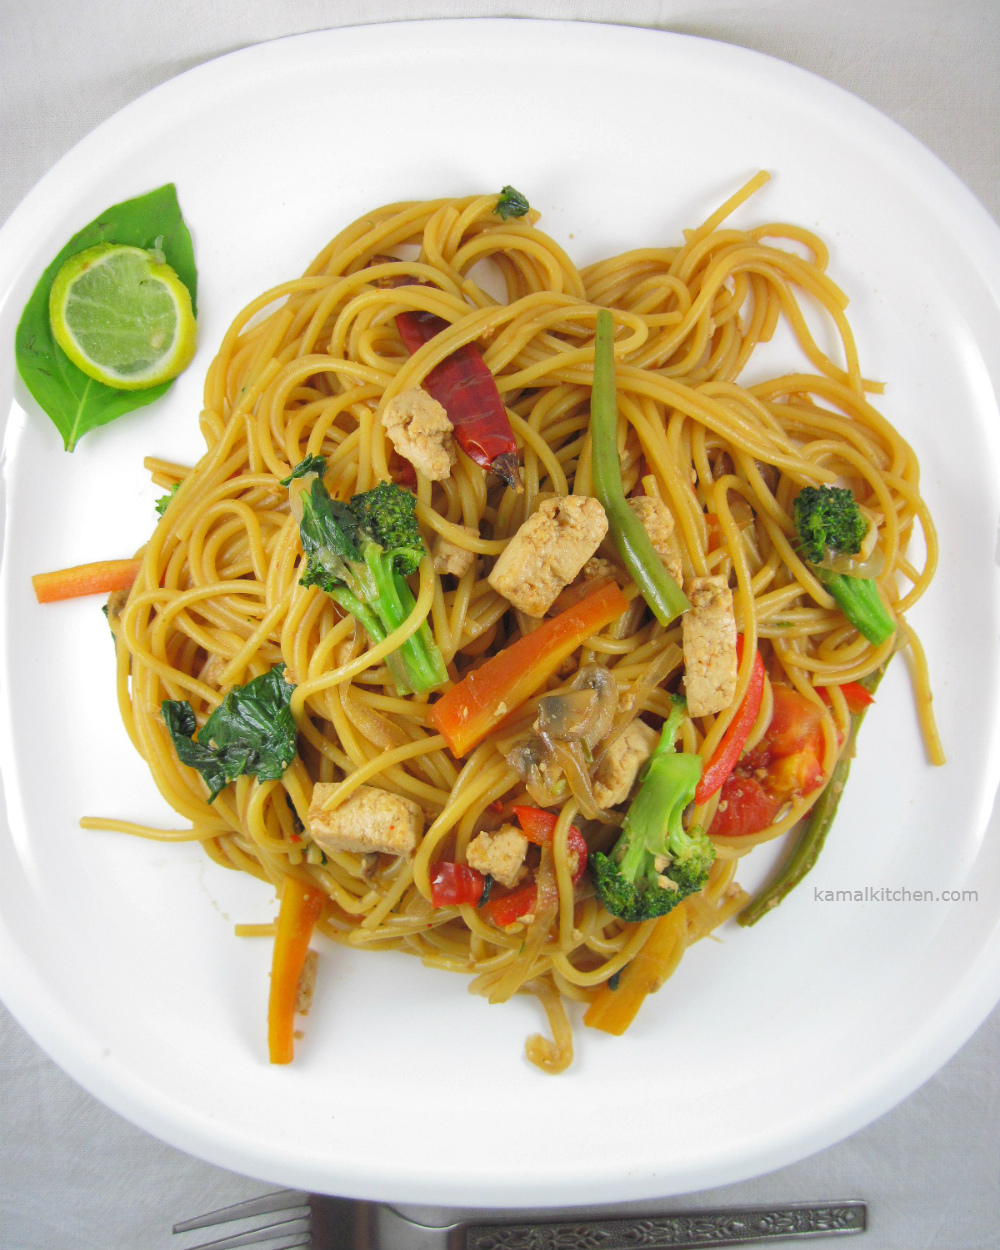 Drunken Noodles - Vegan Pad Kee Mao Recipe - KamalKitchen